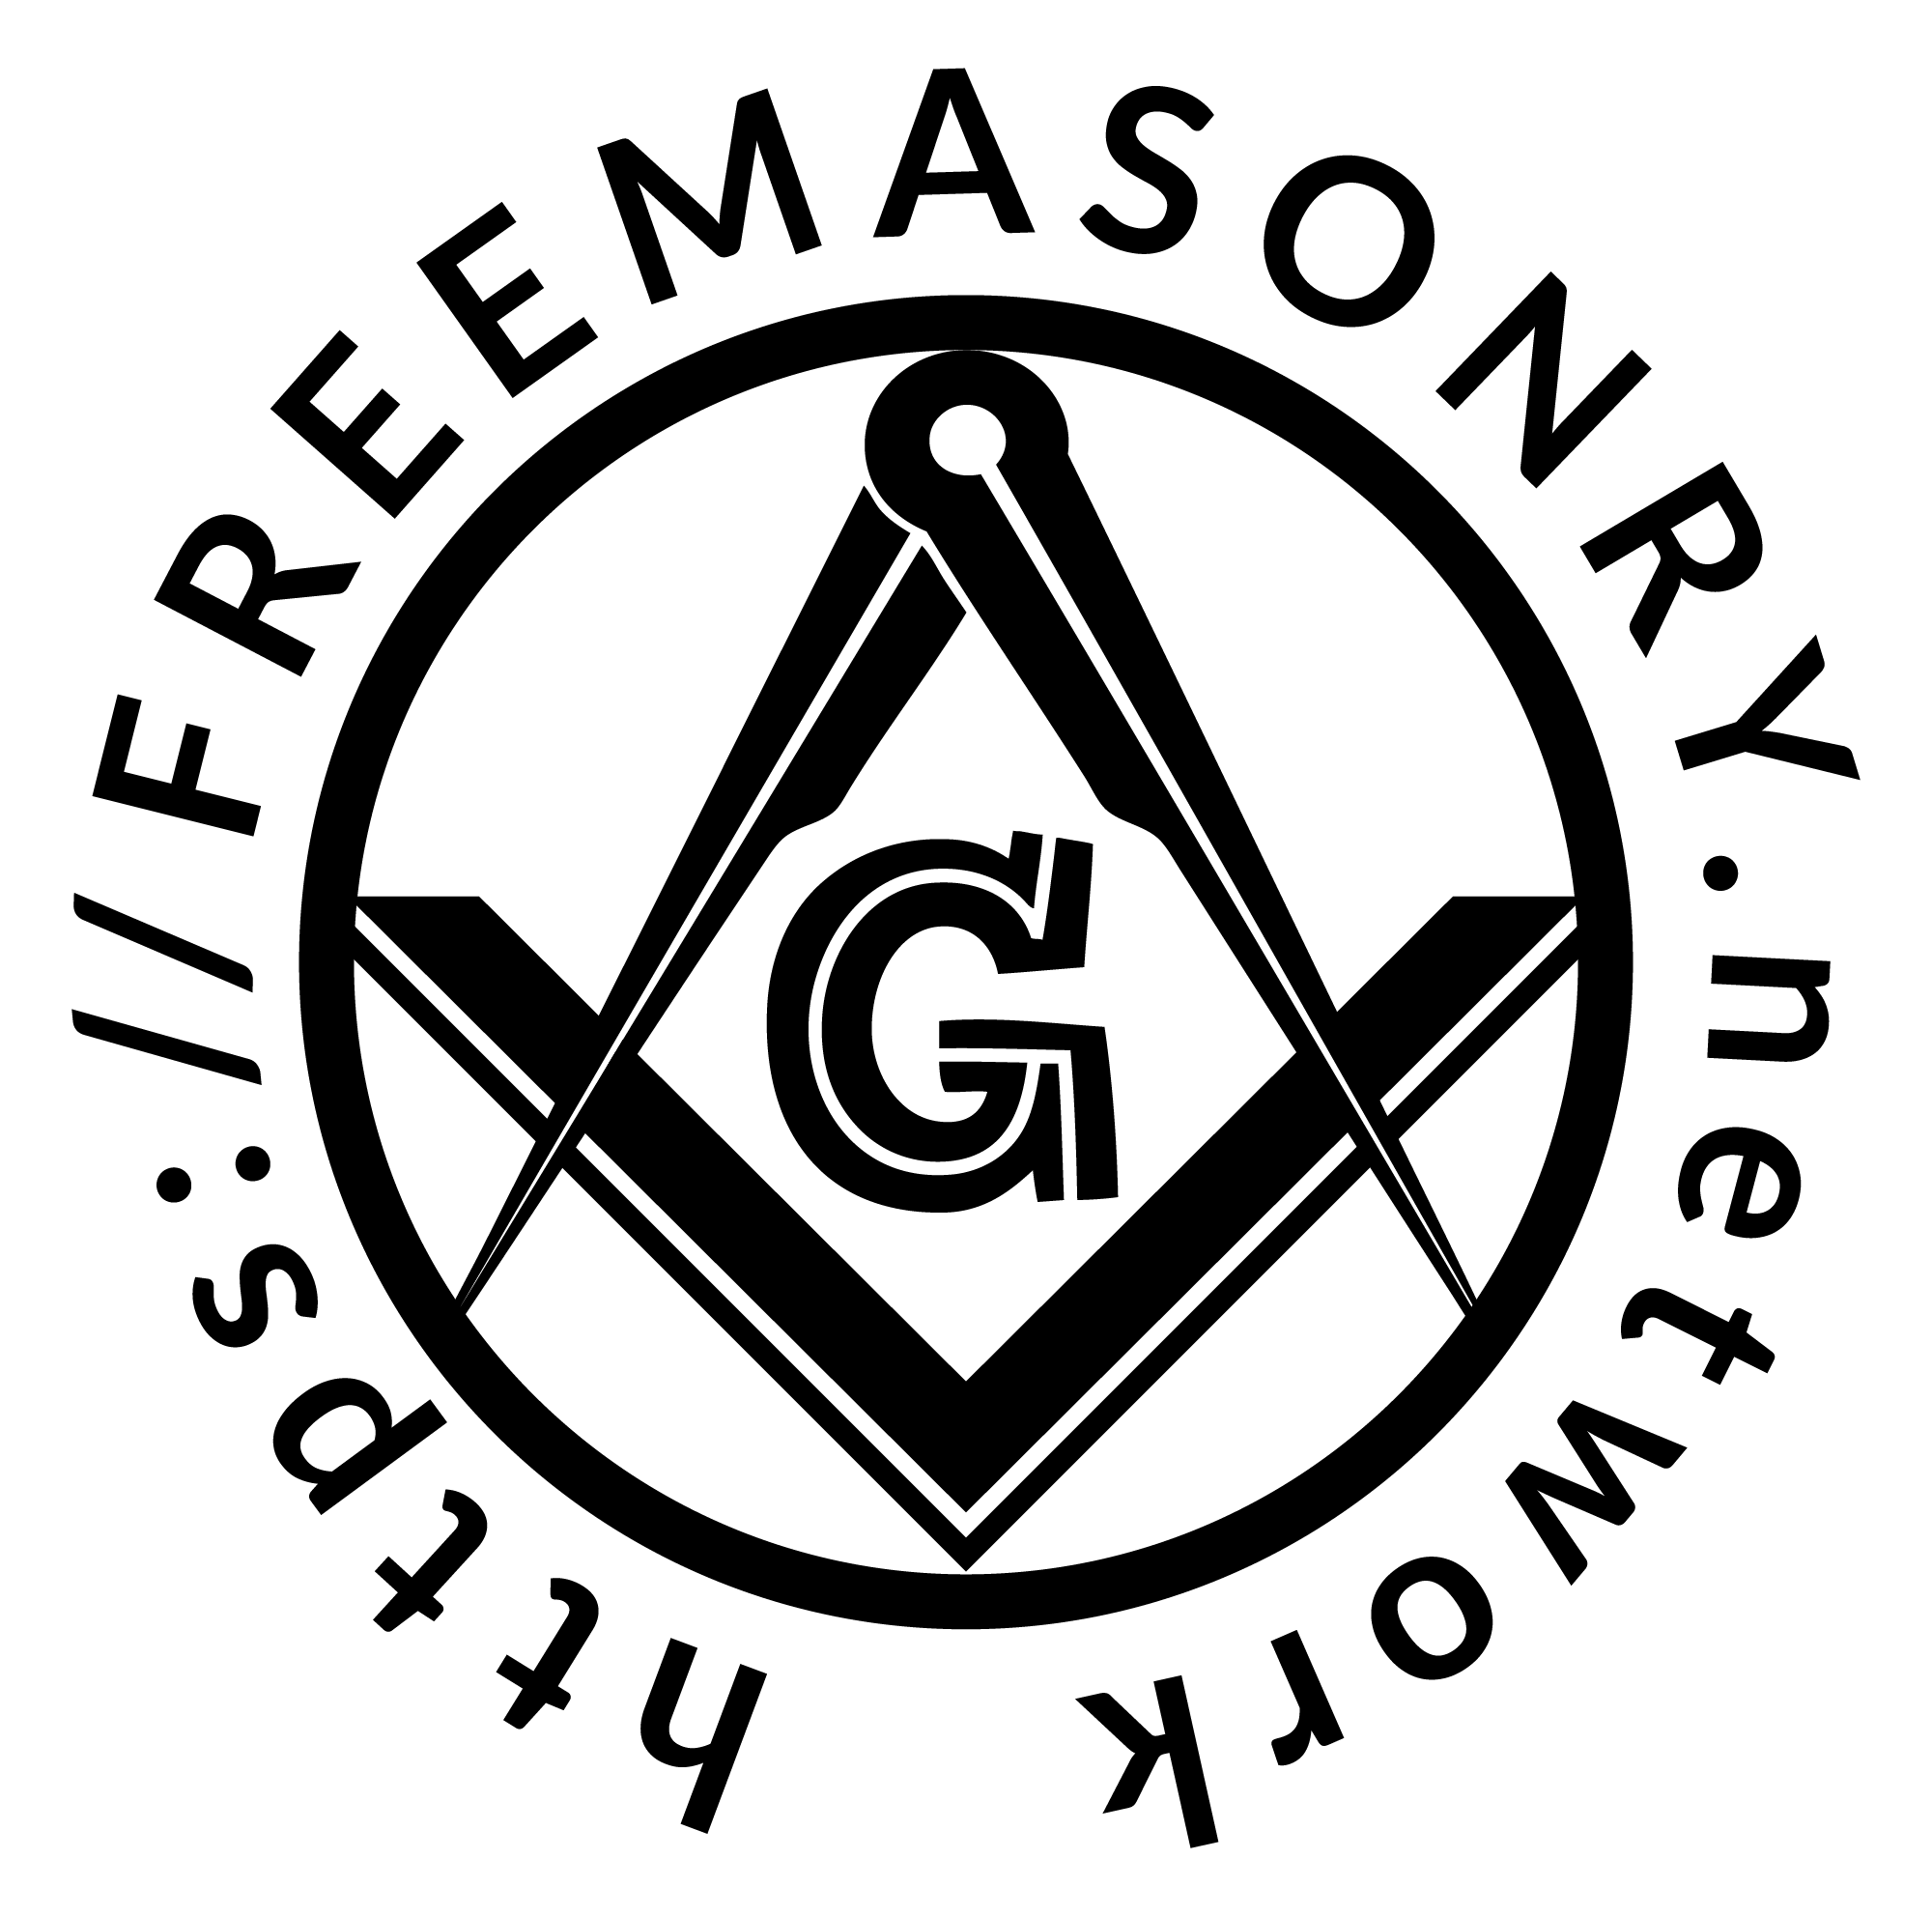 FILMS ON FREEMASONRY